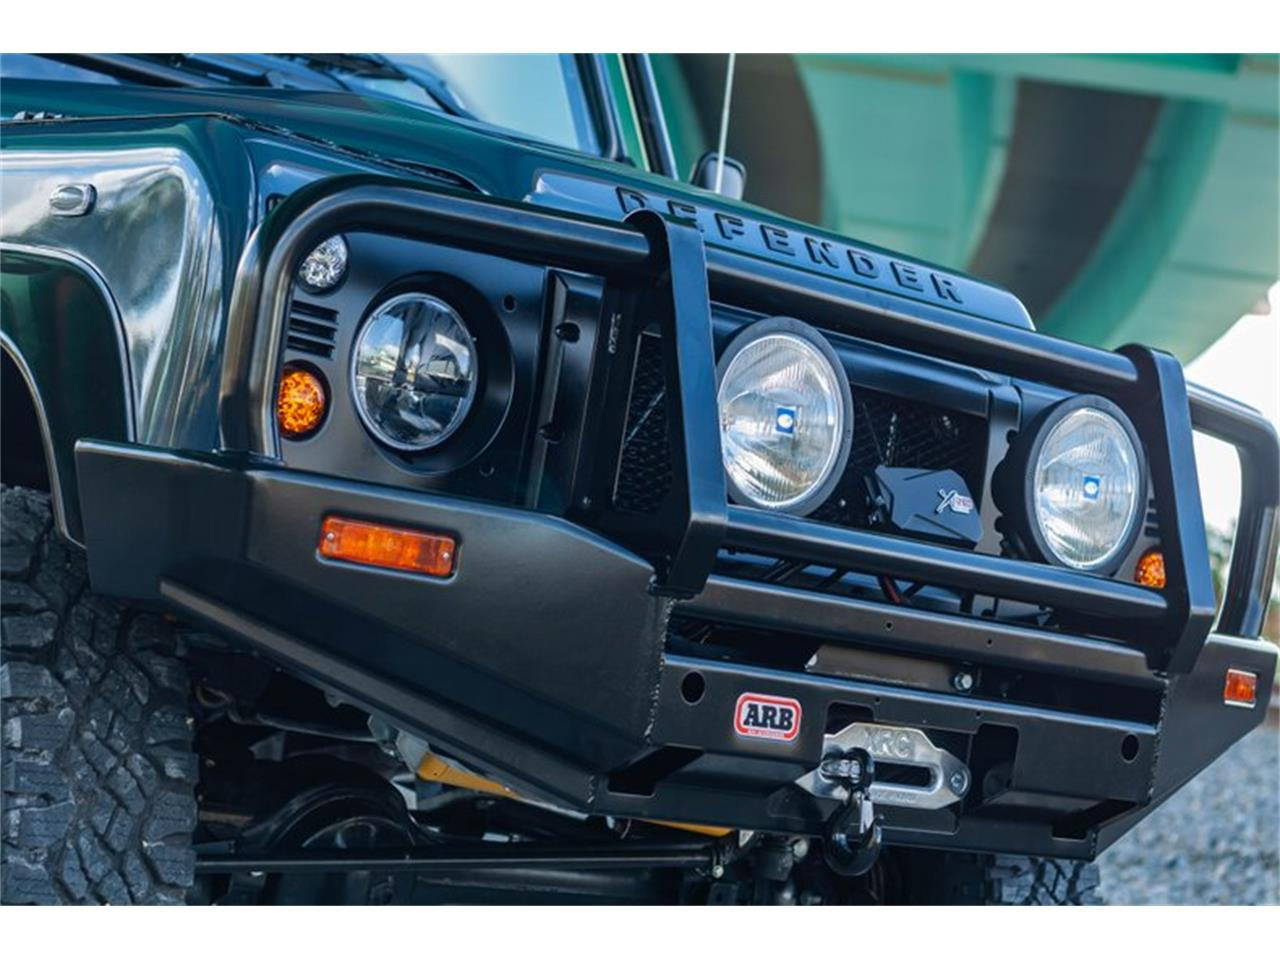 1997 Land Rover Defender for sale in Delray Beach, FL – photo 66